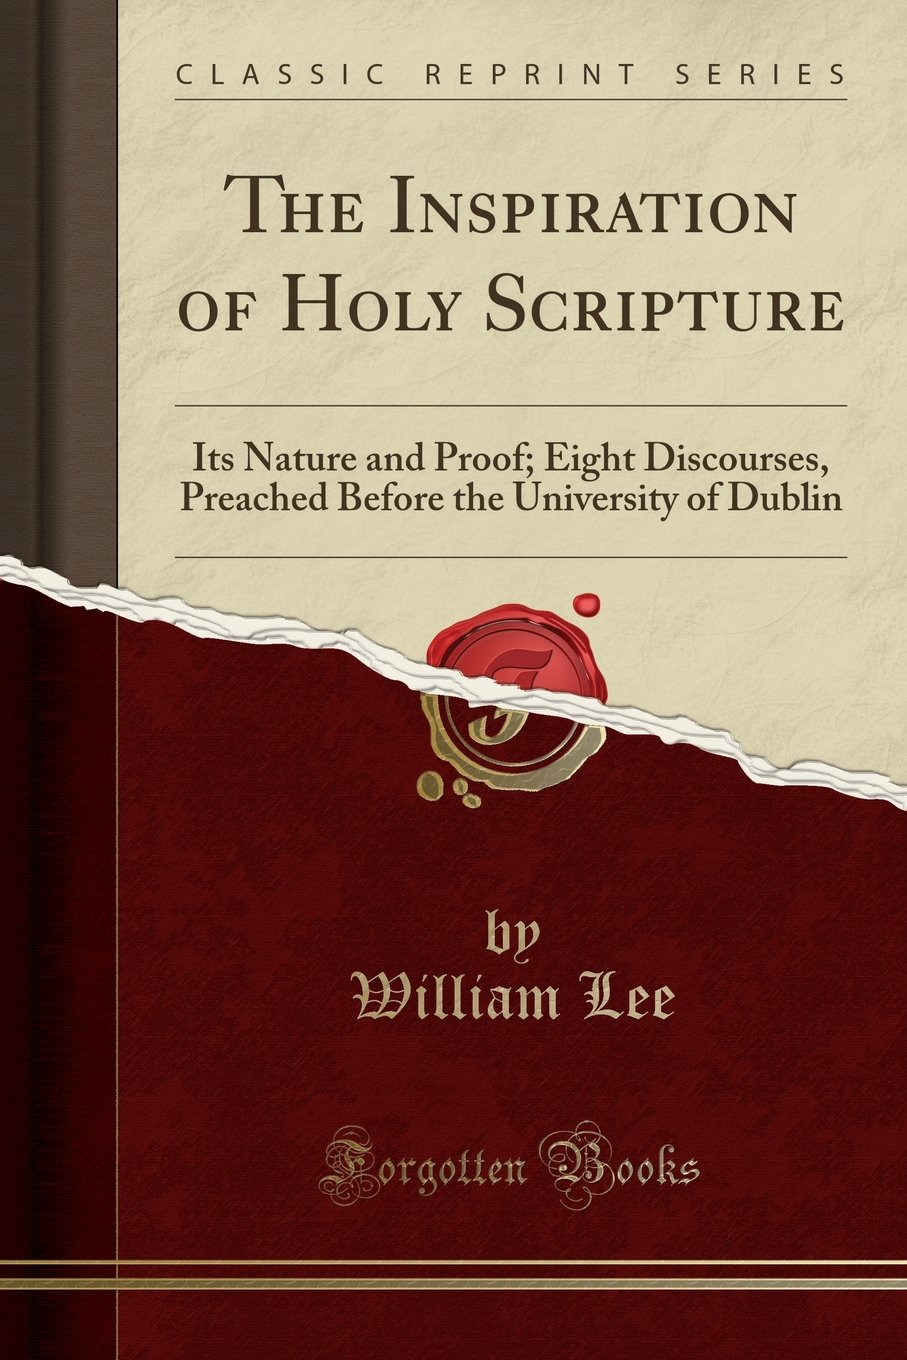 Download The Inspiration of Holy Scripture: Its Nature and Proof; Eight Discourses, Preached Before the University of Dublin (Classic Reprint) PDF